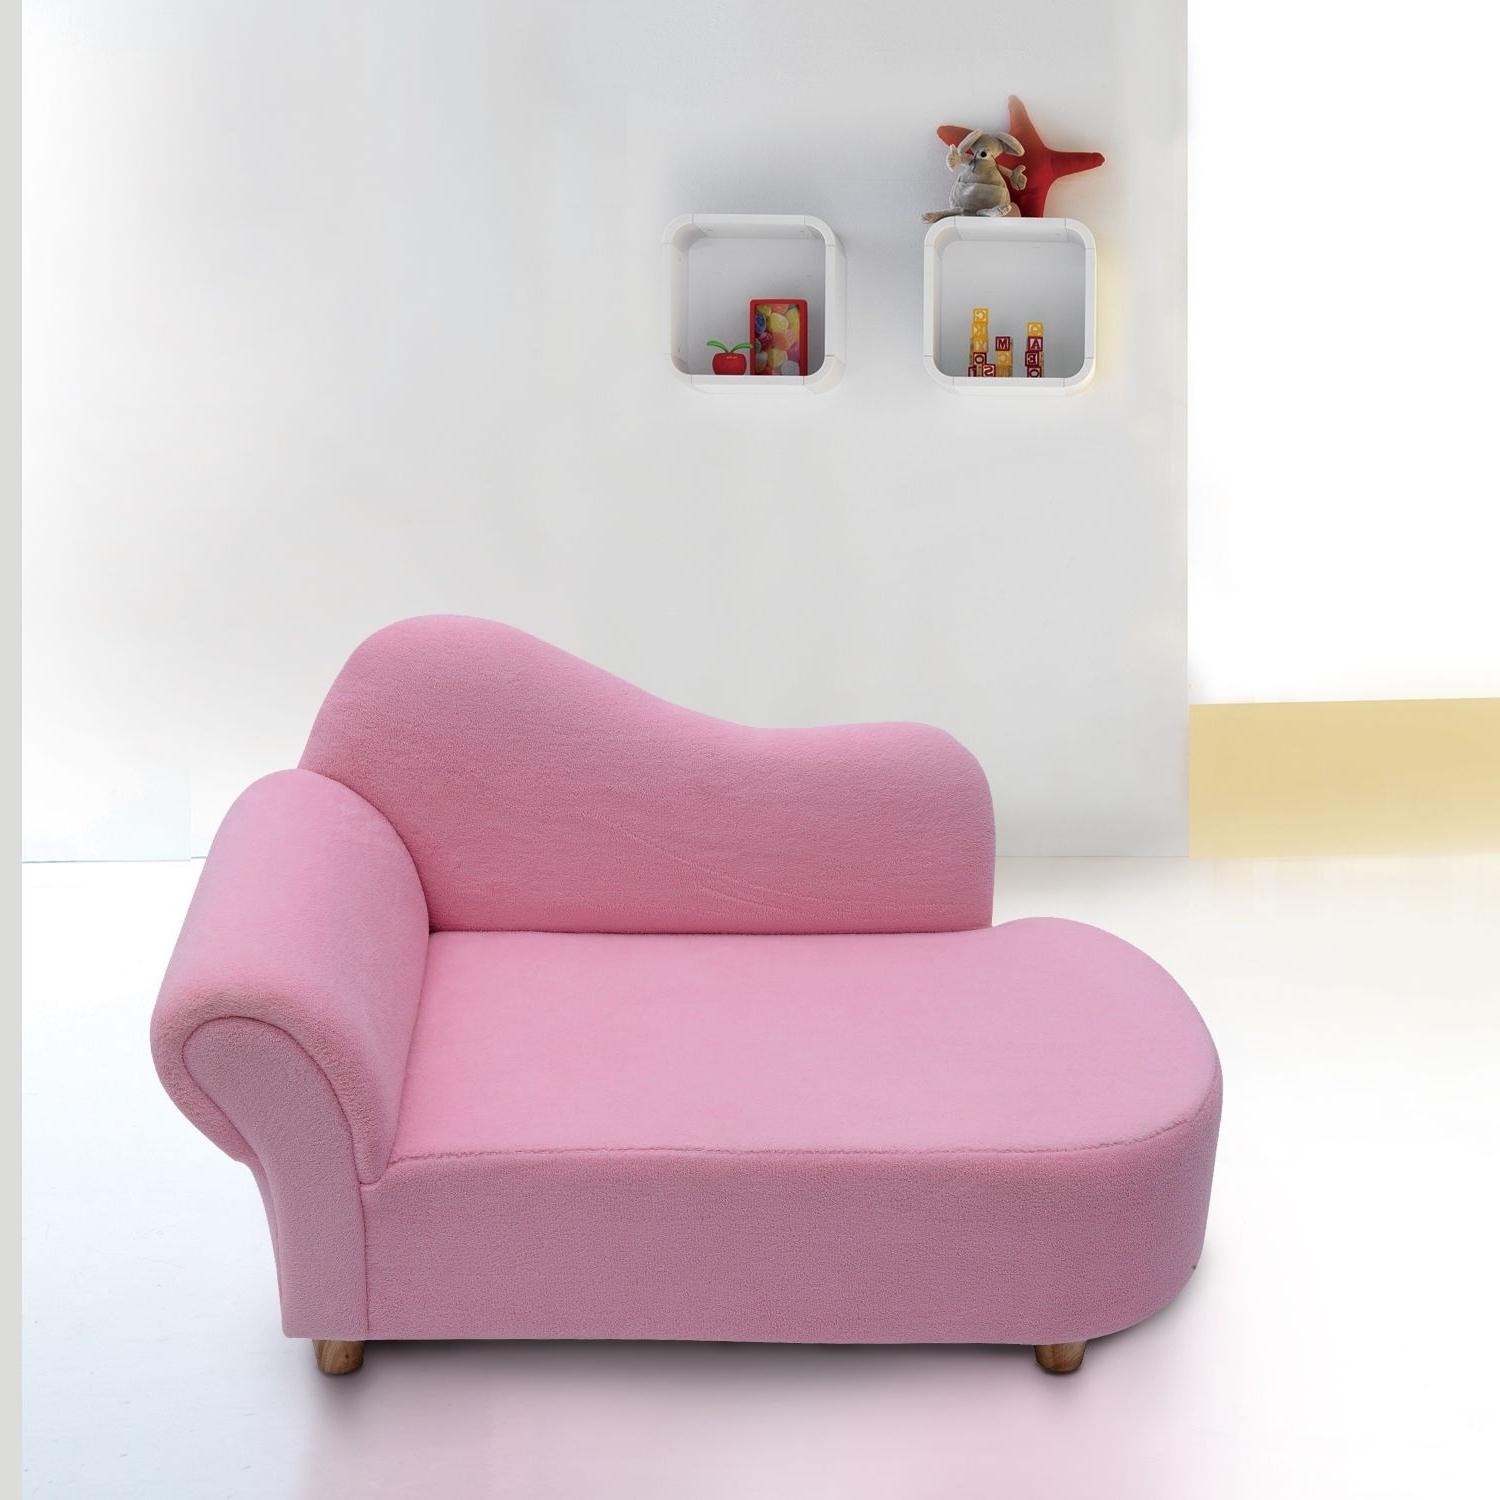 Children's Chaise Lounges Regarding Widely Used Homcom Velvet Kids Chaise Lounge Sofa Pink (View 7 of 15)